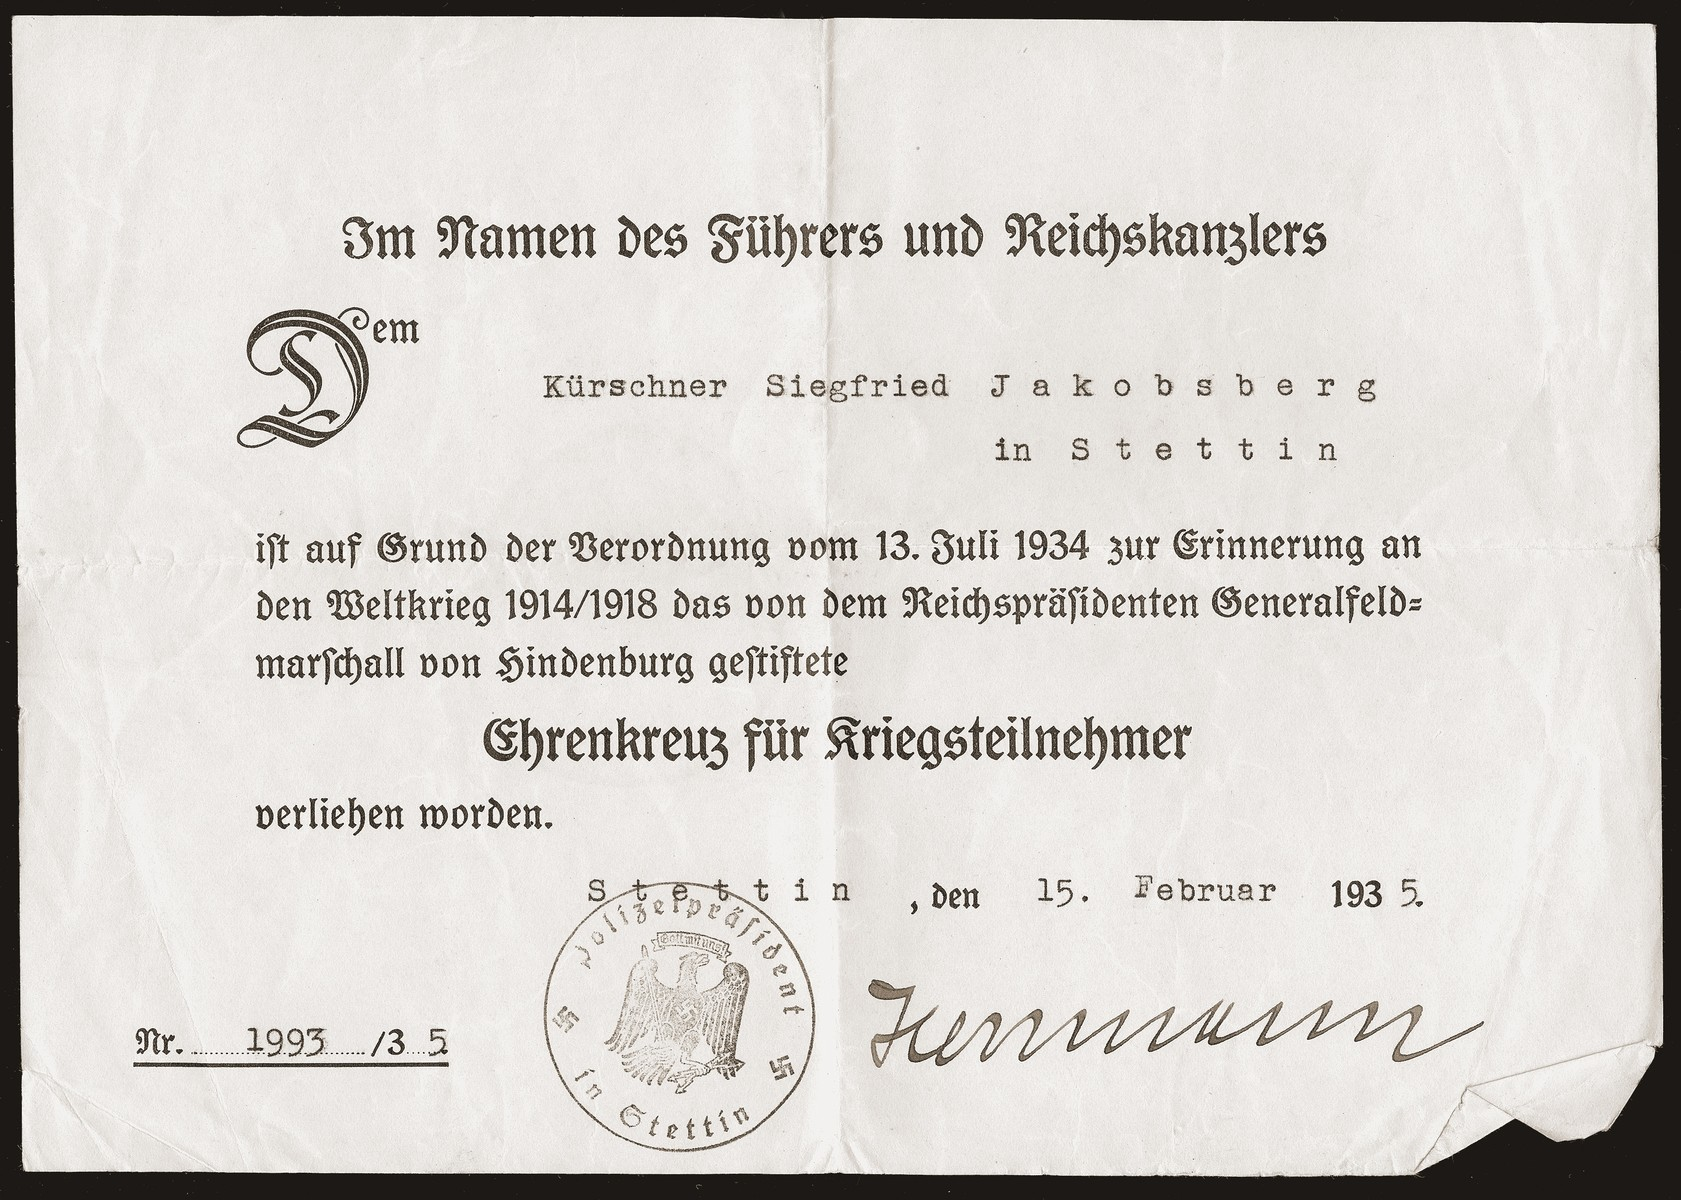 A certificate issued to Siegfried Jacobsberg recognizing him as a World War I veteran and recipient of a medal of honor.